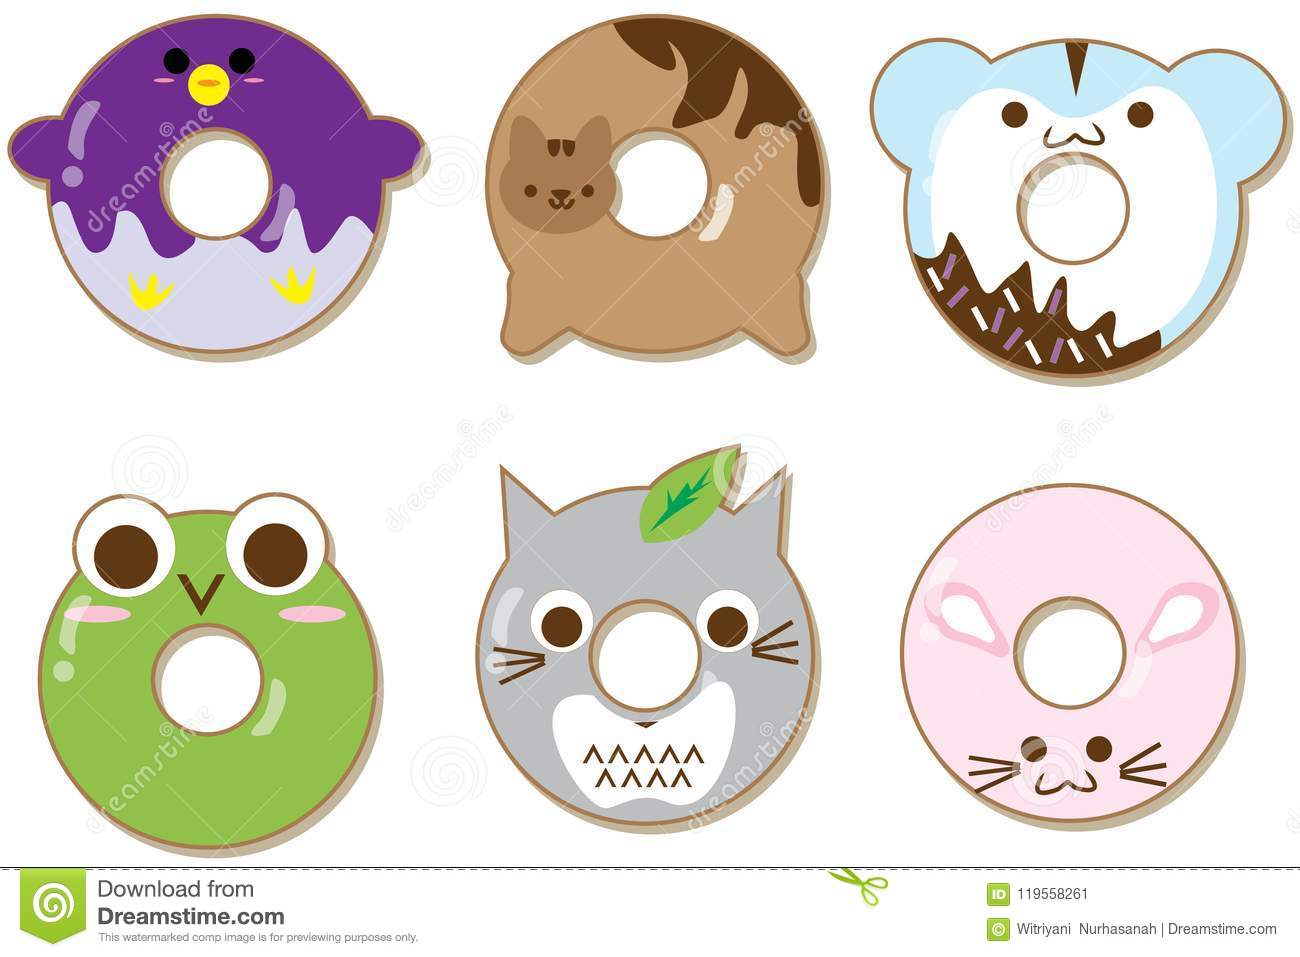 Image of: Cute Kawaii Kawaii Animals Donuts Set Isolated On White Cute Cartoon Characters Dreamstimecom Kawaii Animals Donuts Set Isolated On White Cute Cartoon Characters